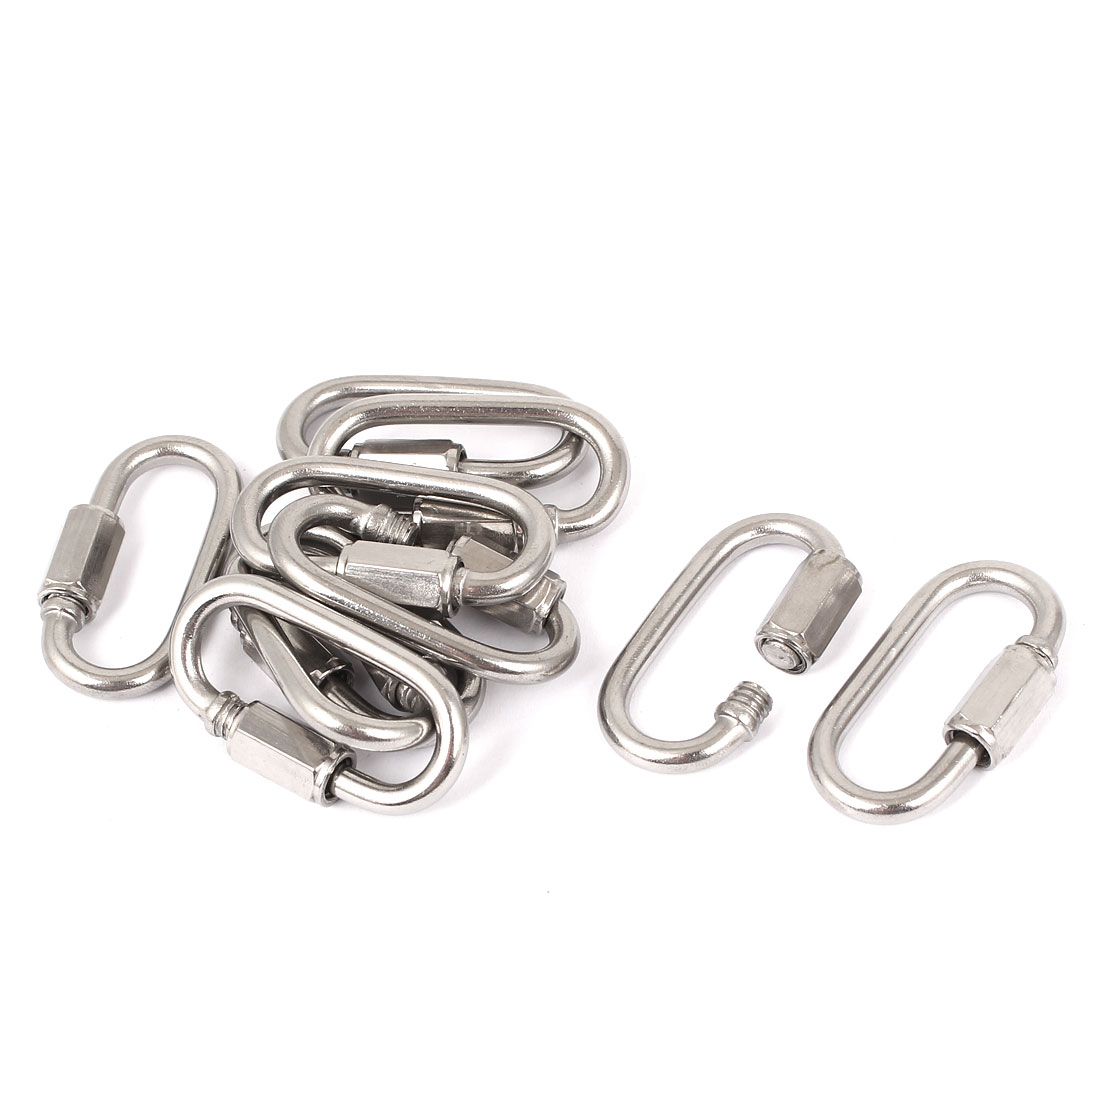 4mm Thickness Quick Links Carabiners Key Ring Silver Tone 10 Pcs